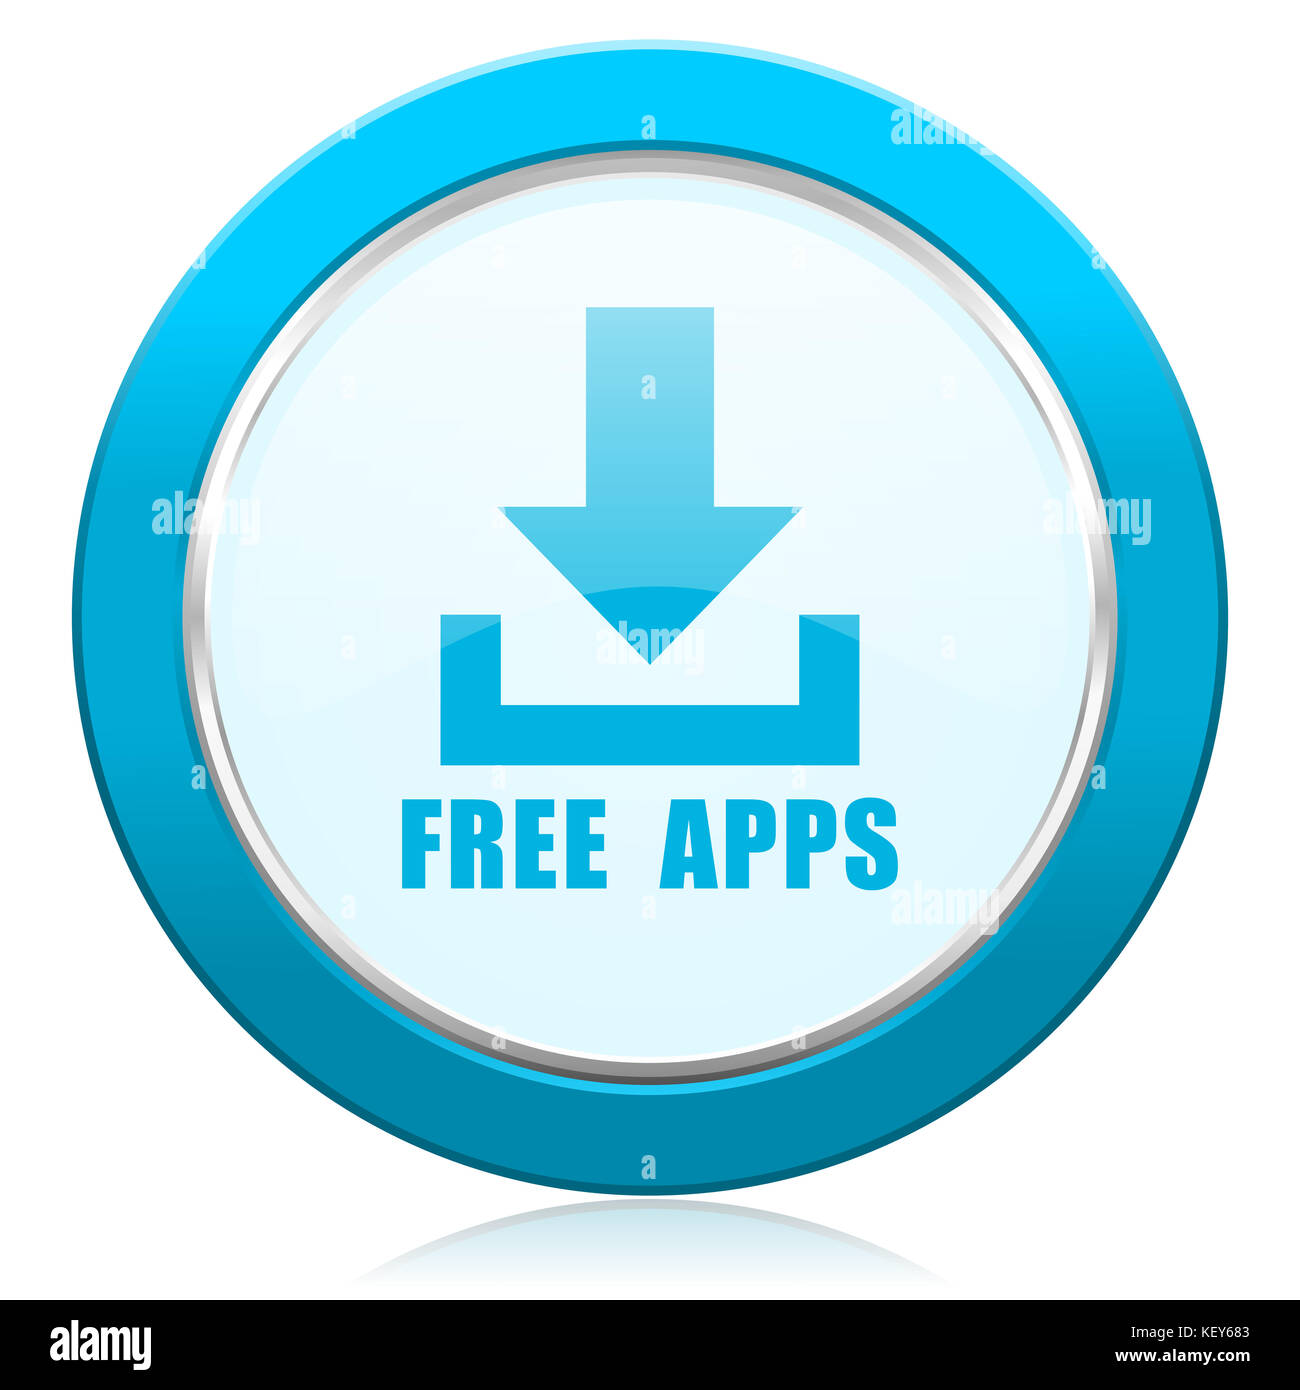 Free apps blue chrome silver metallic border web icon  Round